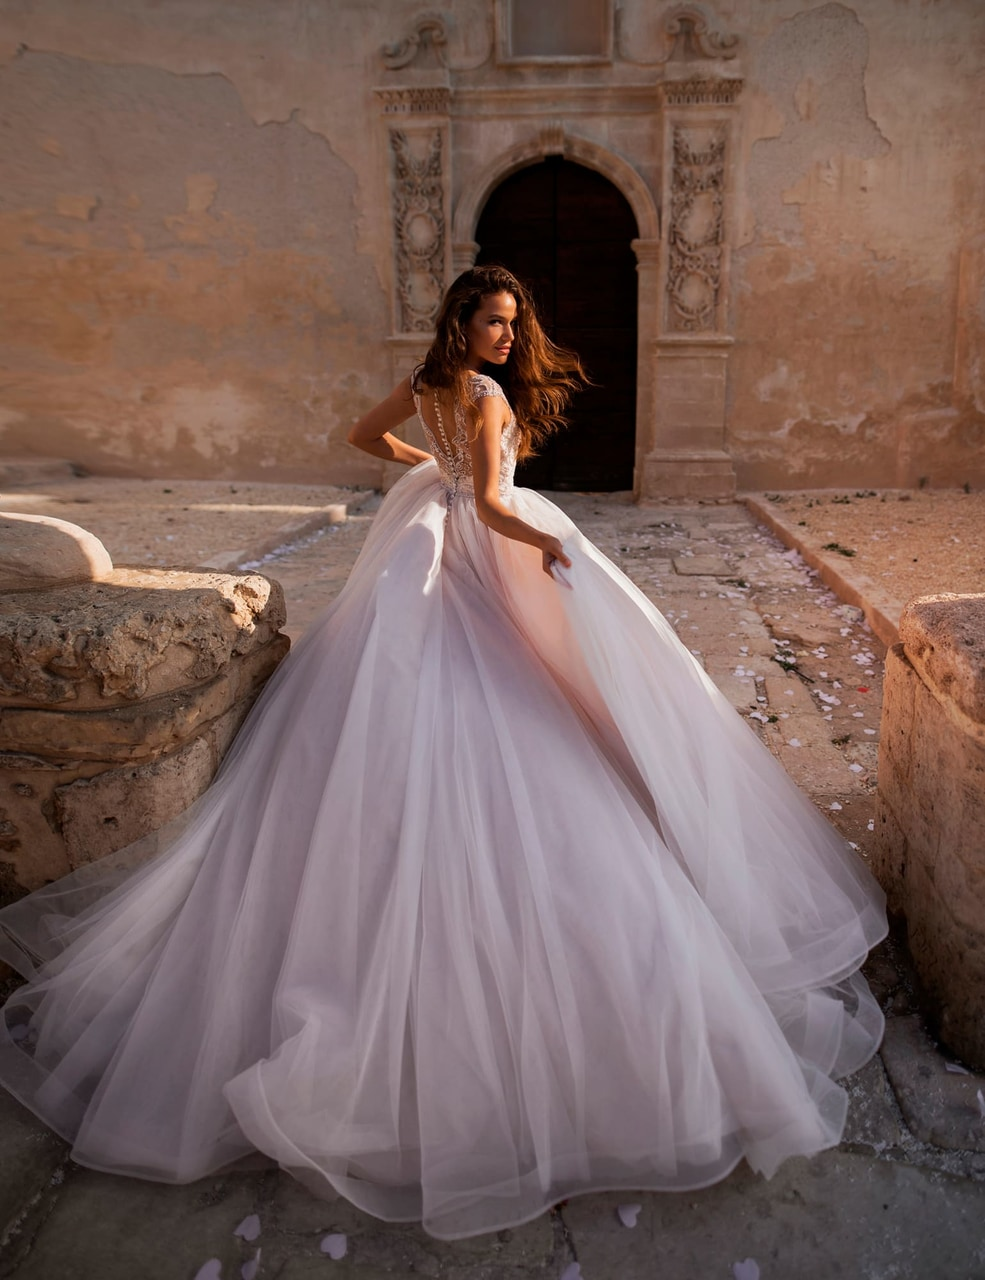 dresses, prom, wow and wedding dress